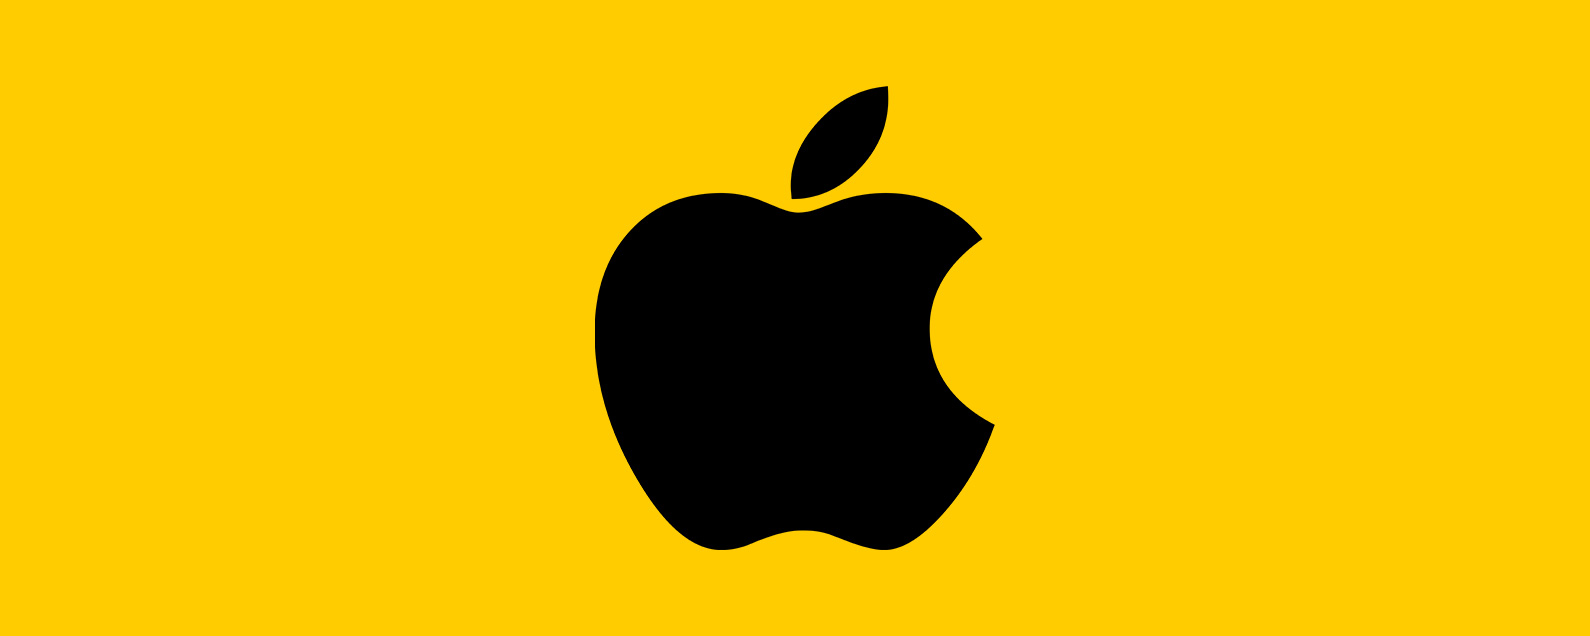 The Short-Term Future of Apple Lies in a Unified Operating System